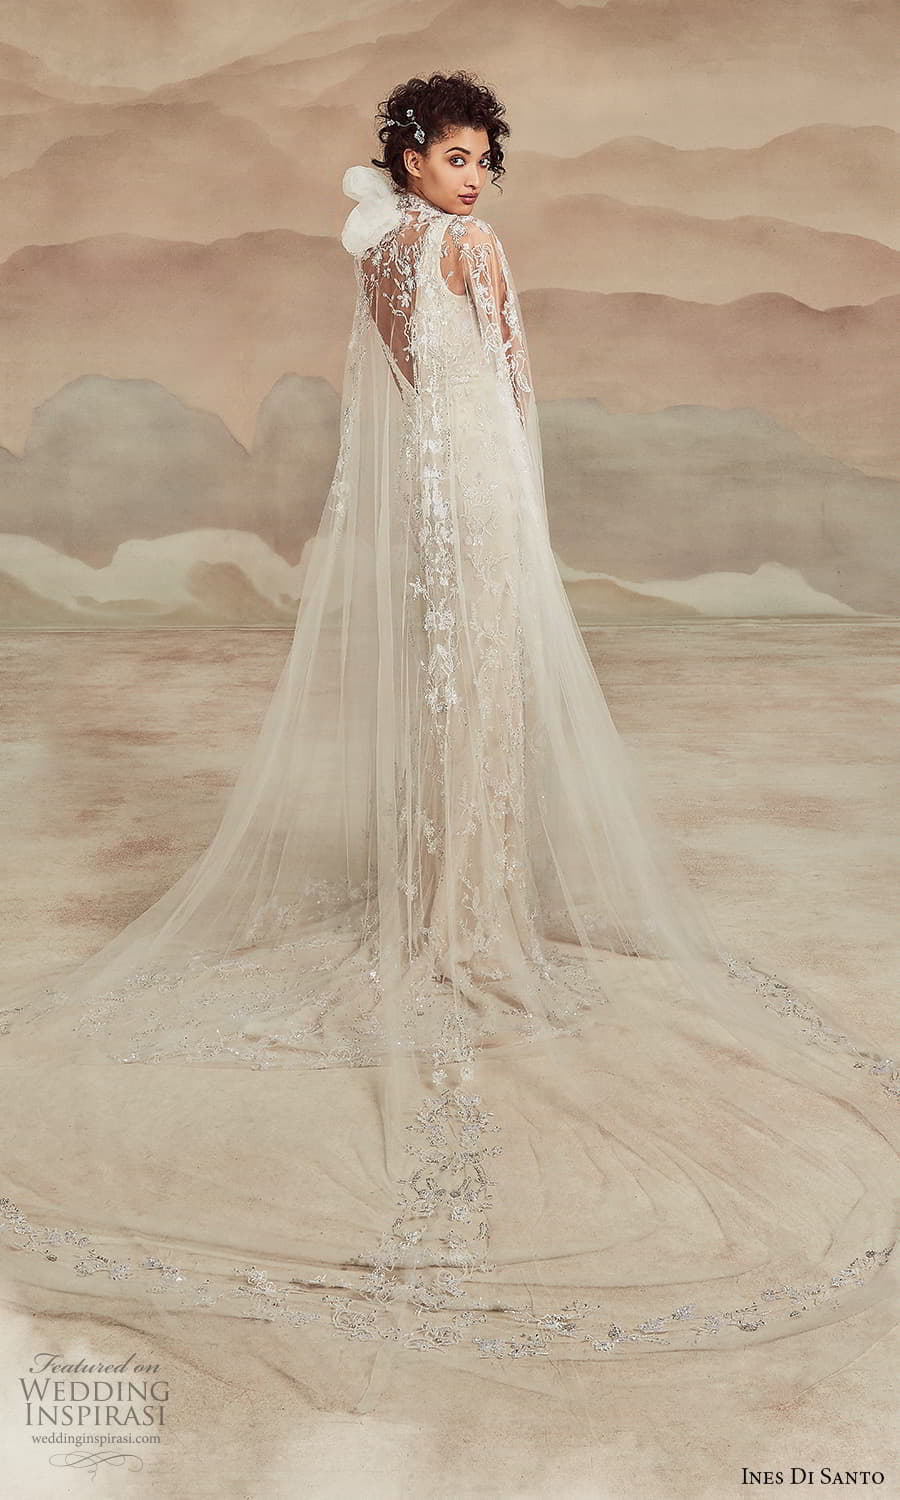 ines di santo spring 2022 bridal sleeveless straps v neckline fully embellished sheath wedding dres slit skirt sheer cape (4) bv